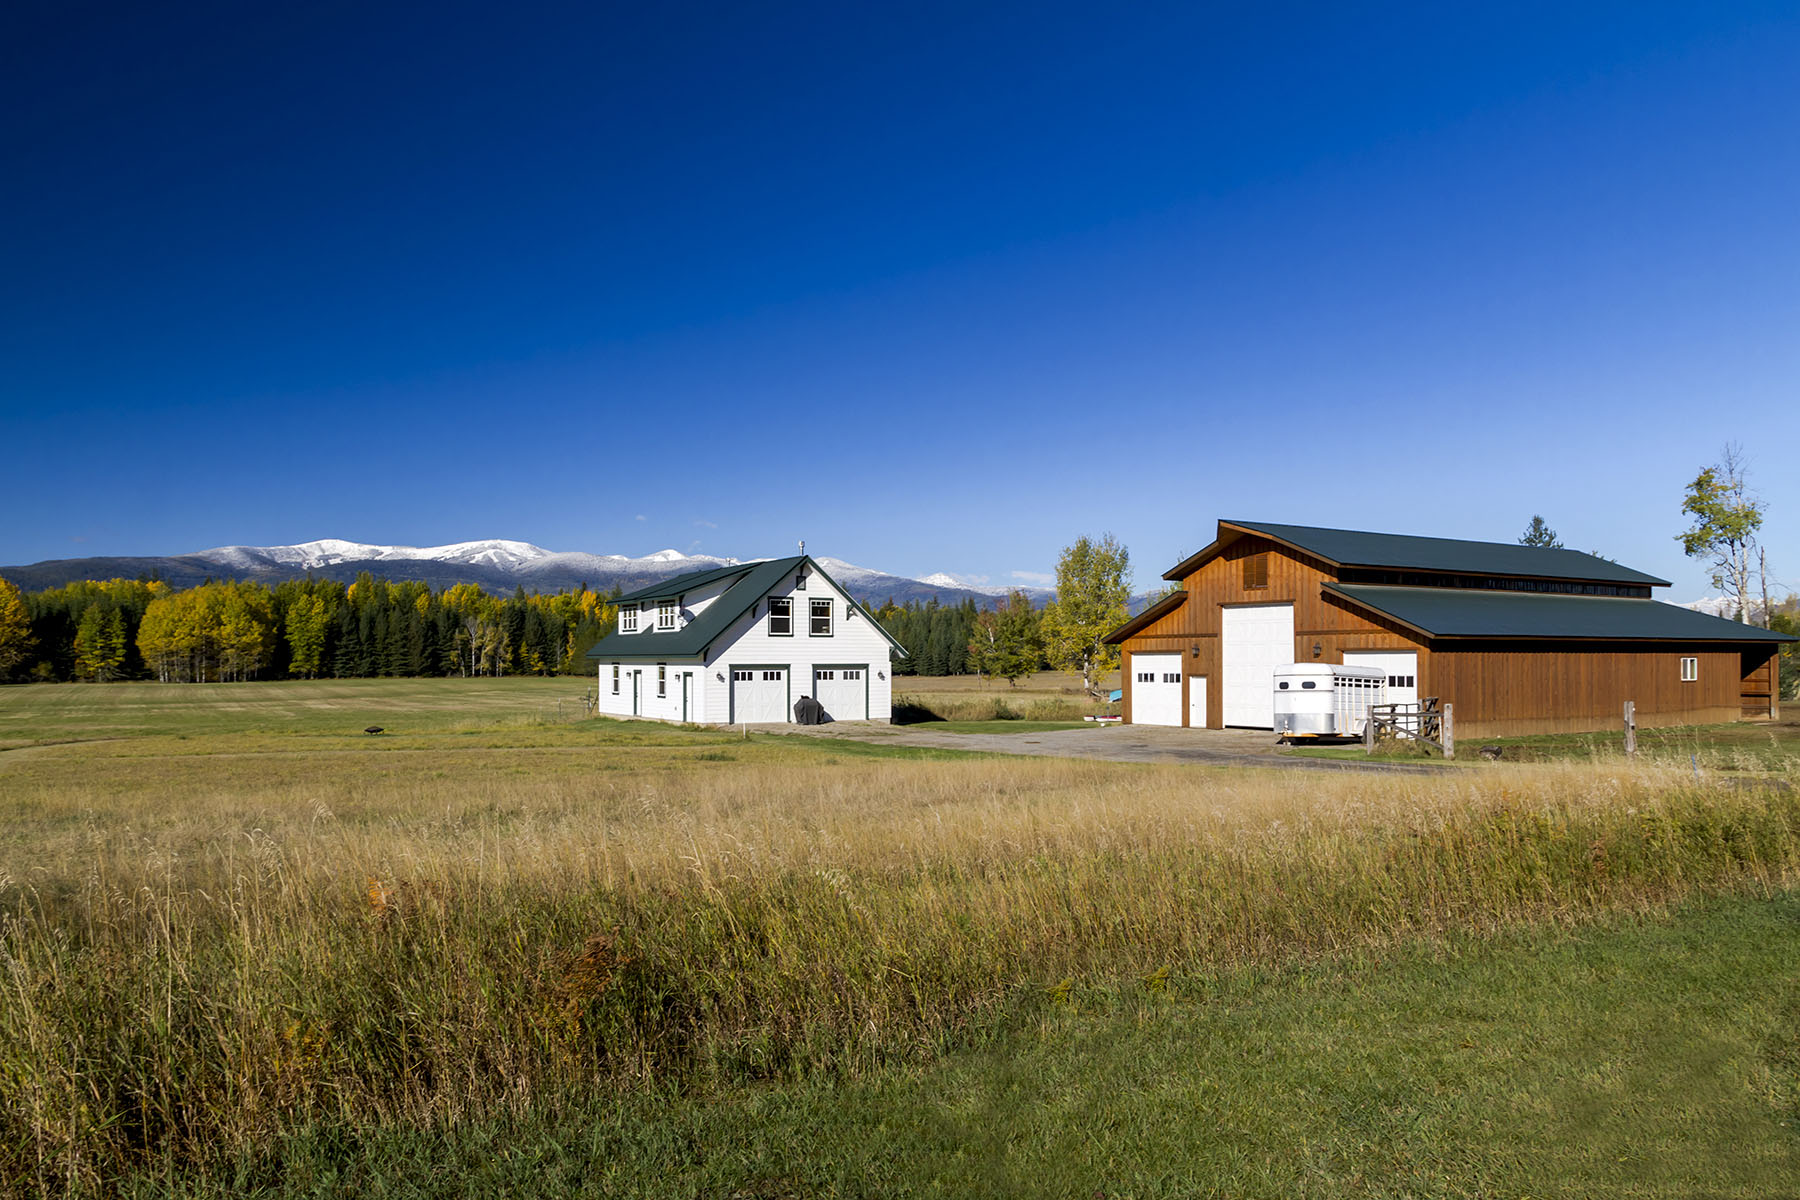 Moradia para Venda às Stunning 40 Acre Ranch in Selle Valley 2236 Hickey Road Sandpoint, Idaho, 83864 Estados Unidos